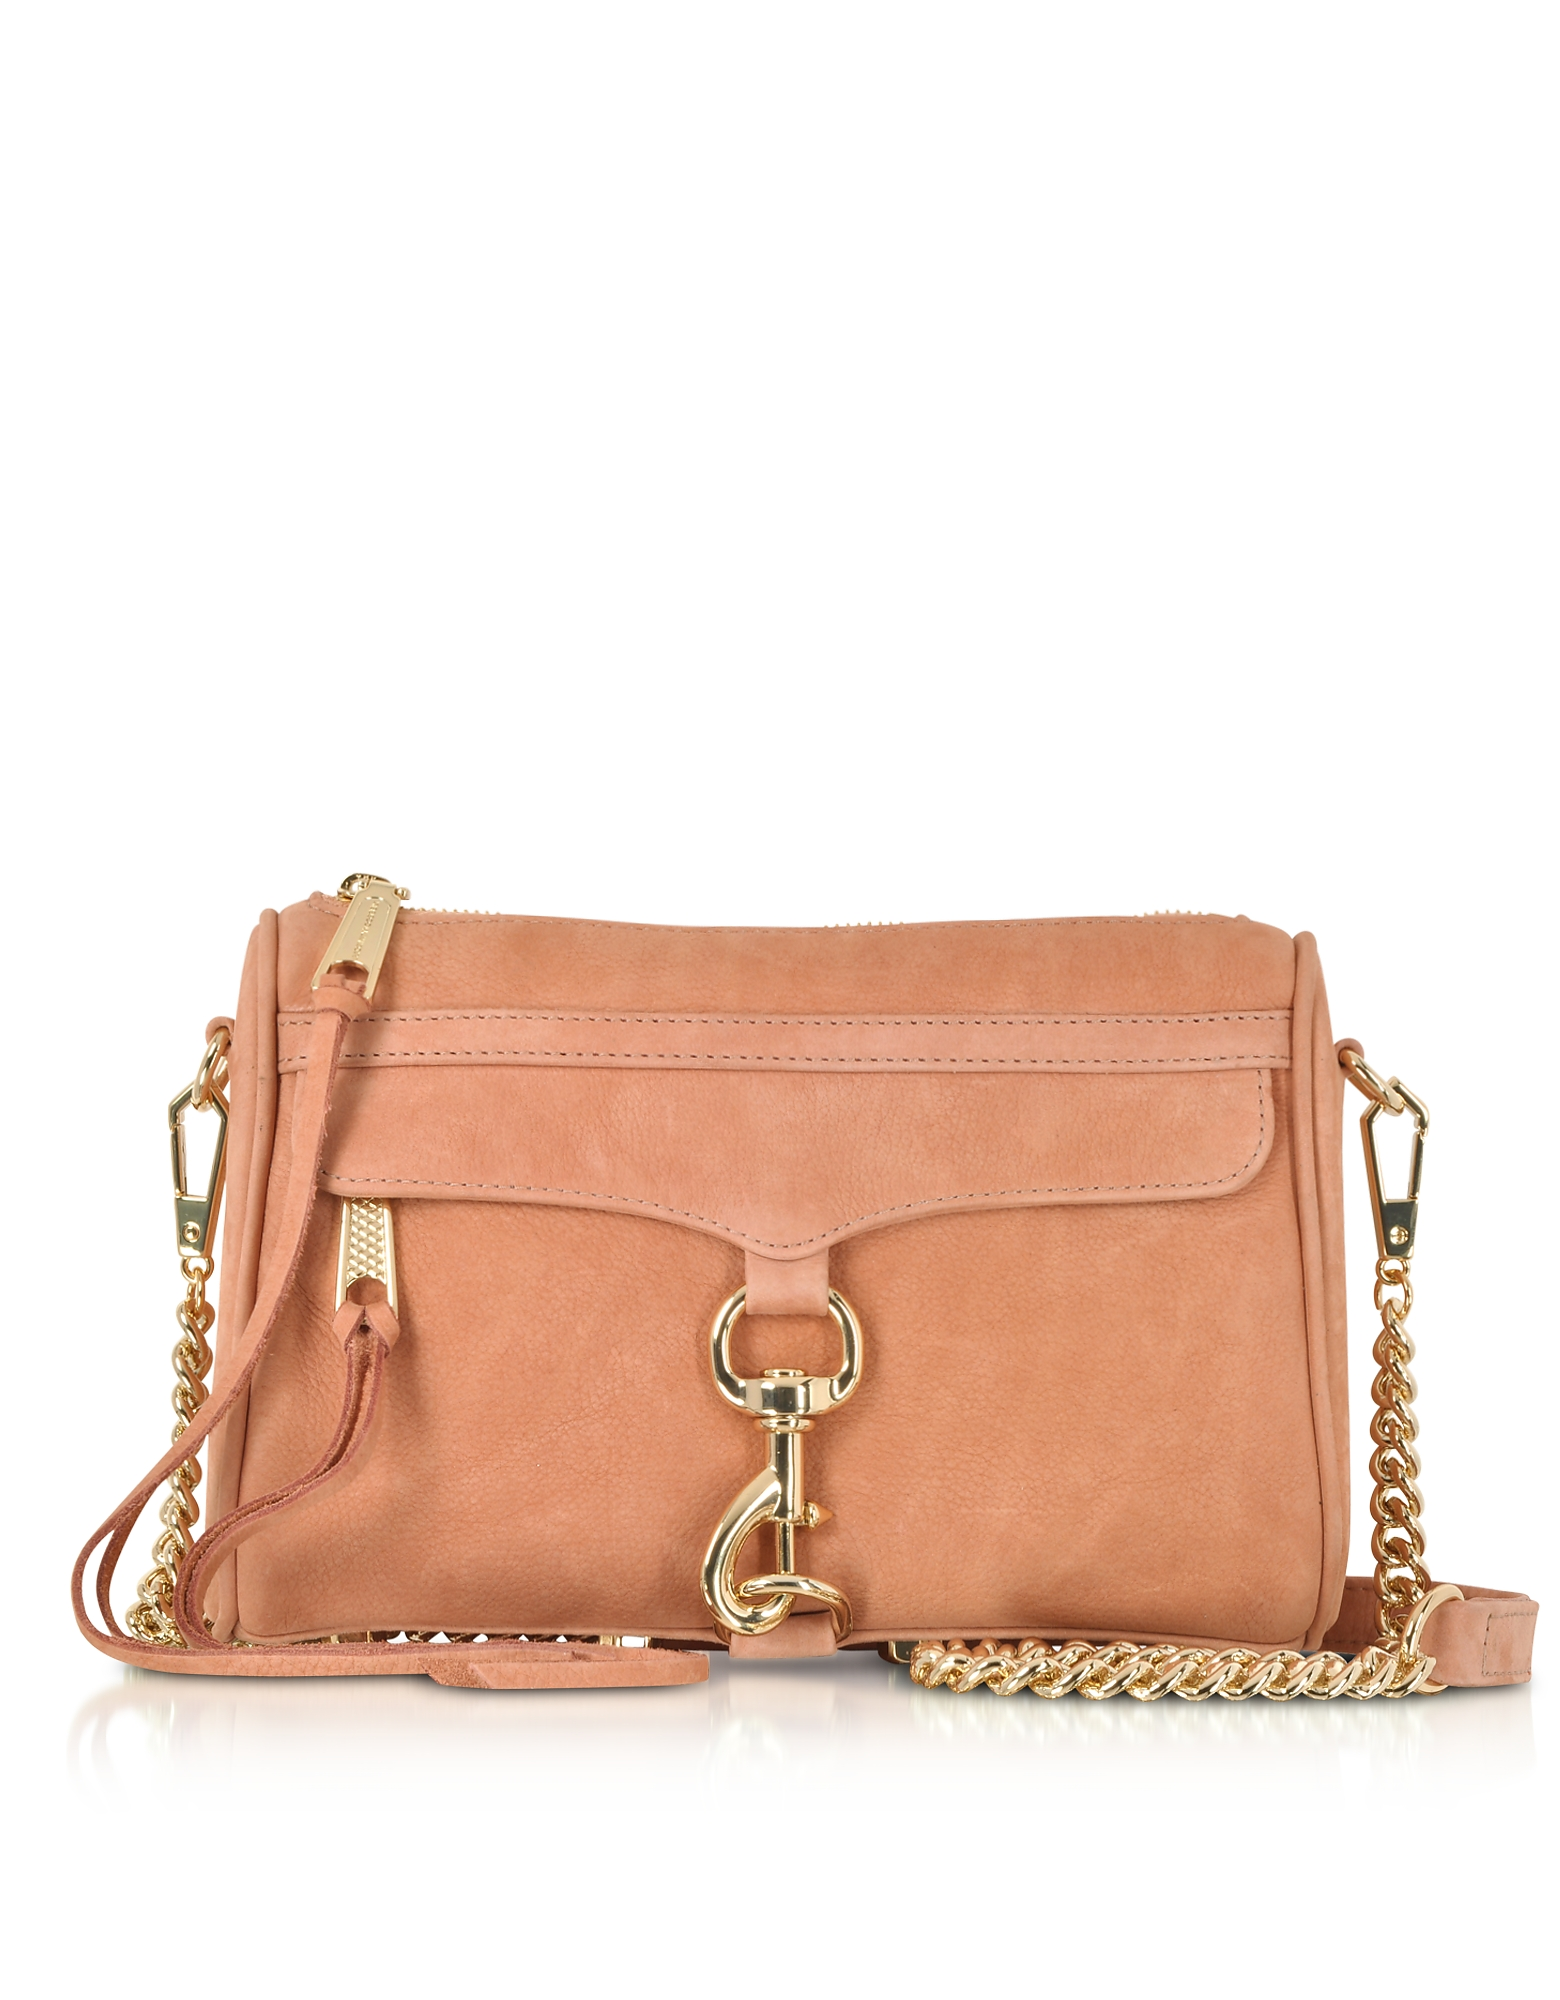 Rebecca Minkoff Handbags, Dusty Peach Leather Mini M.A.C. Crossbody Bag